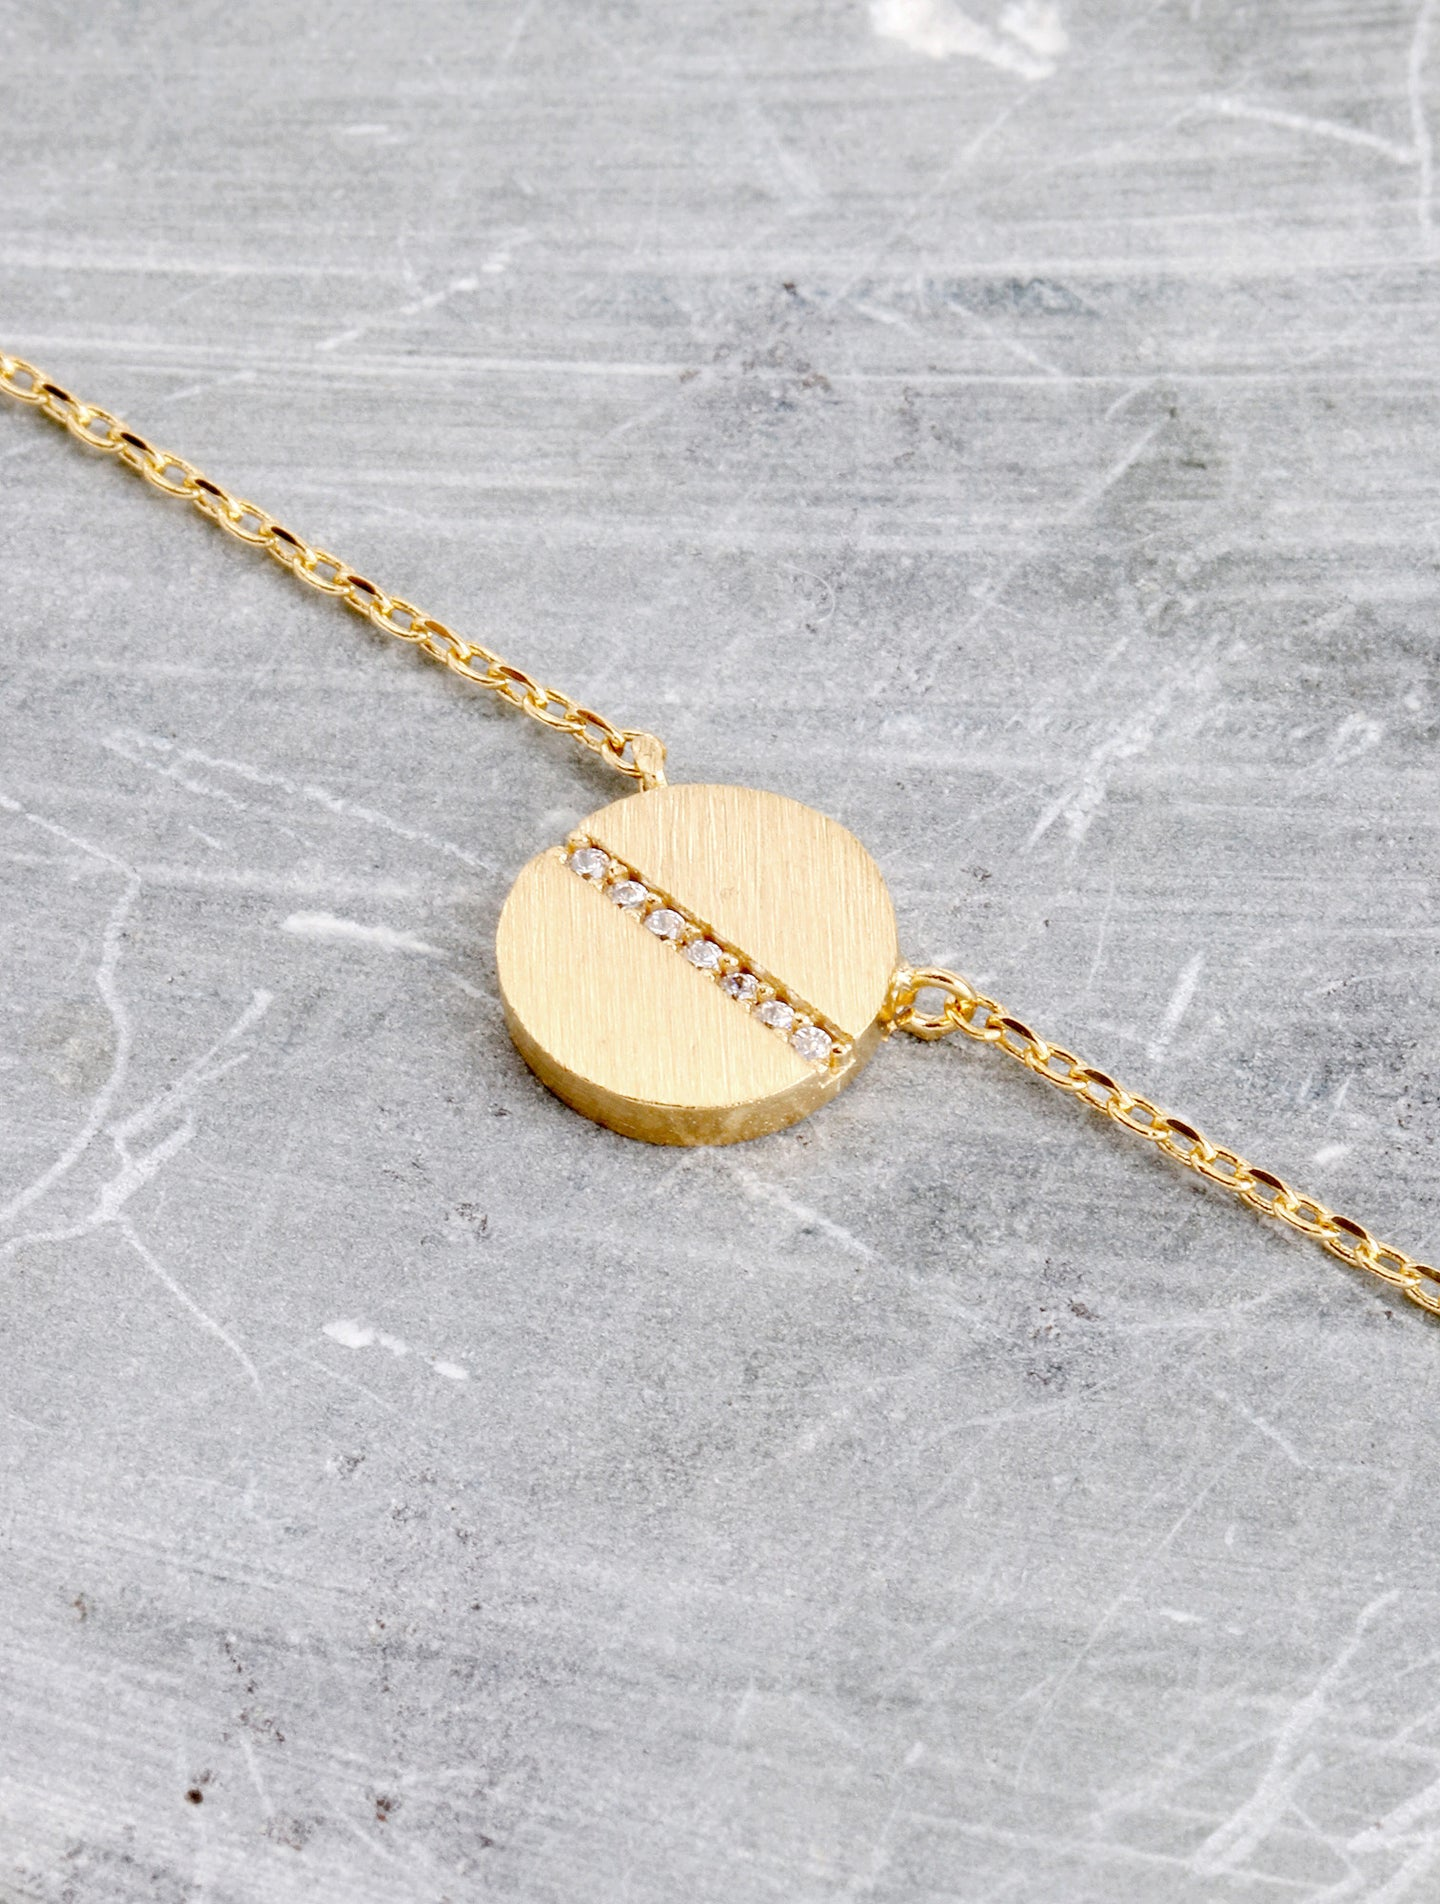 Flat Screw Pendant Necklace Anarchy Street Gold - Details